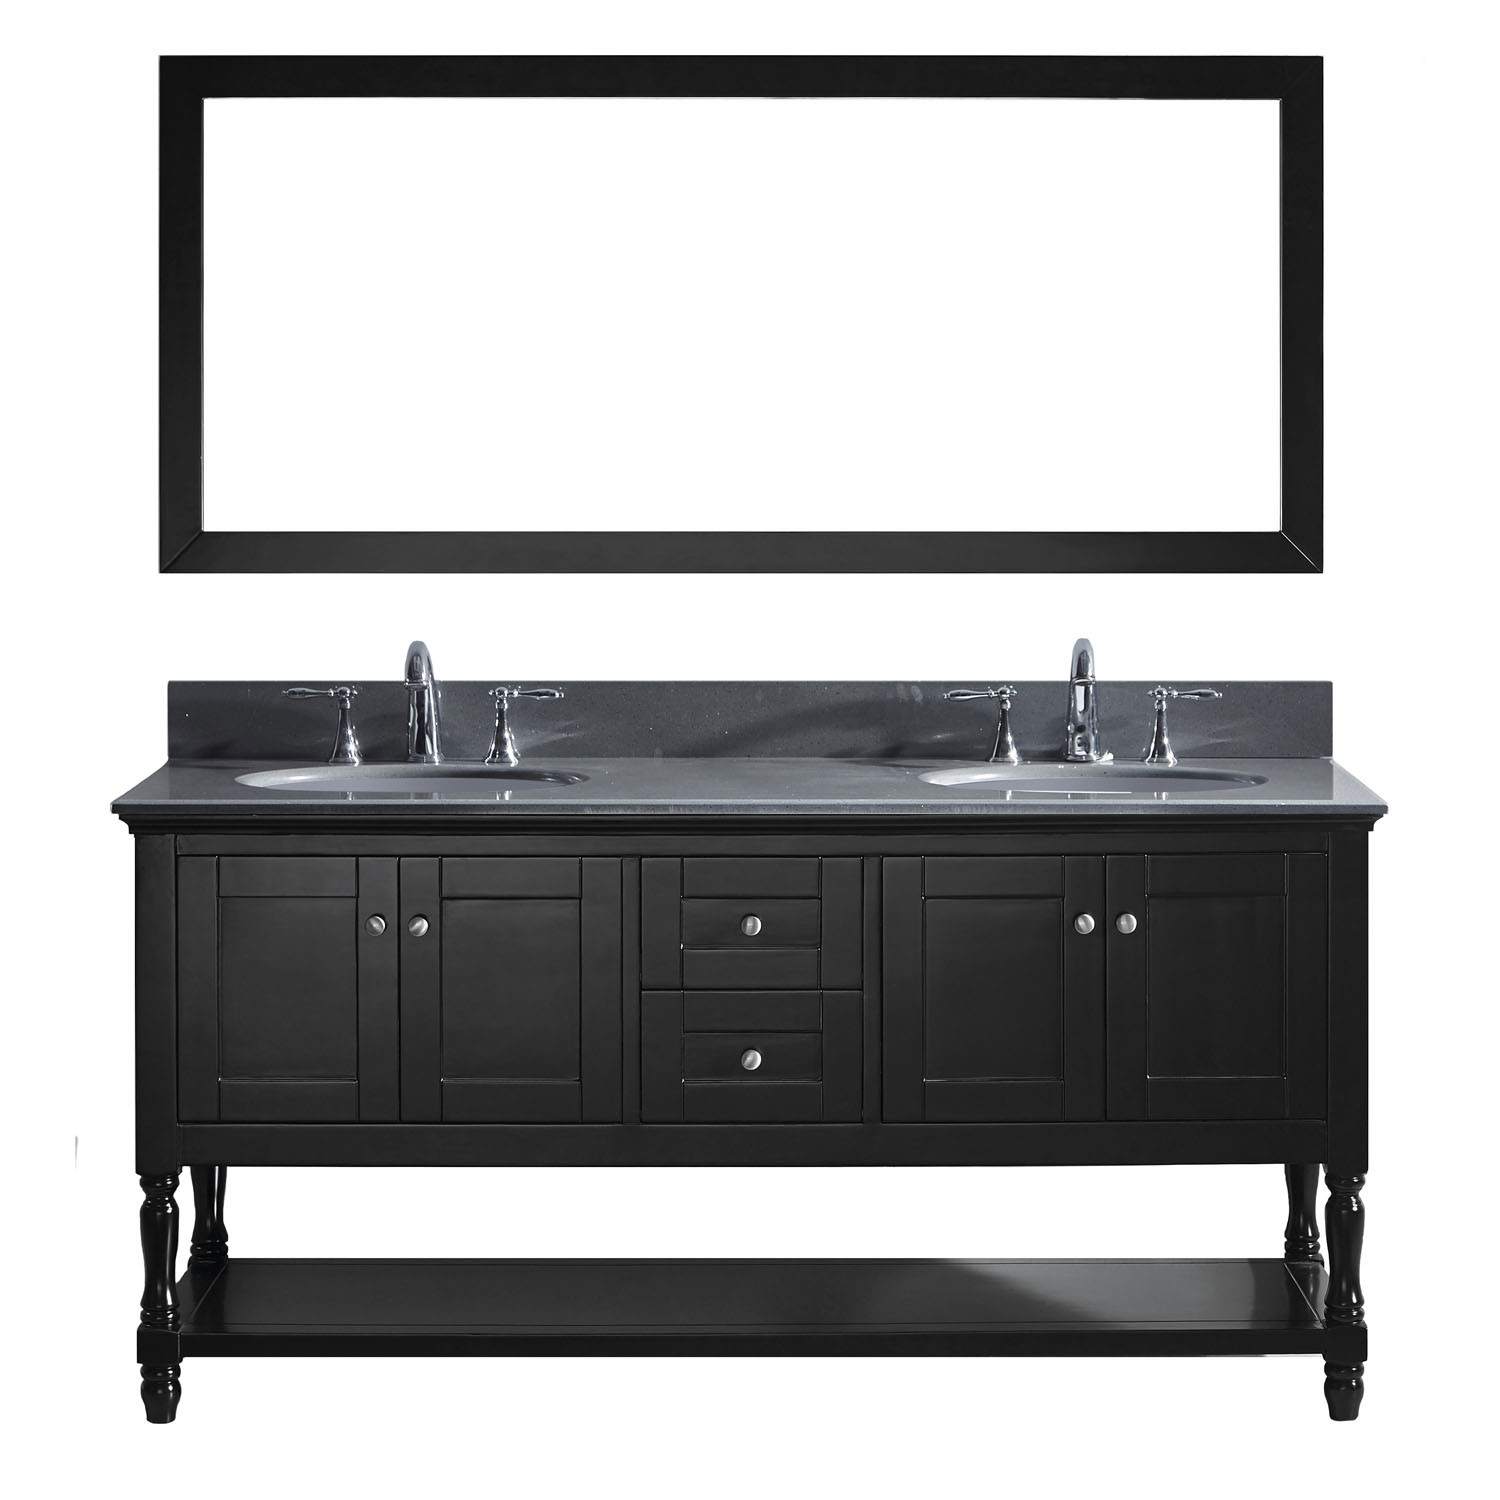 Virtu MD-3172-GQRO-ES-001 Julianna 72 Inch Double Bathroom Vanity Set In Espresso